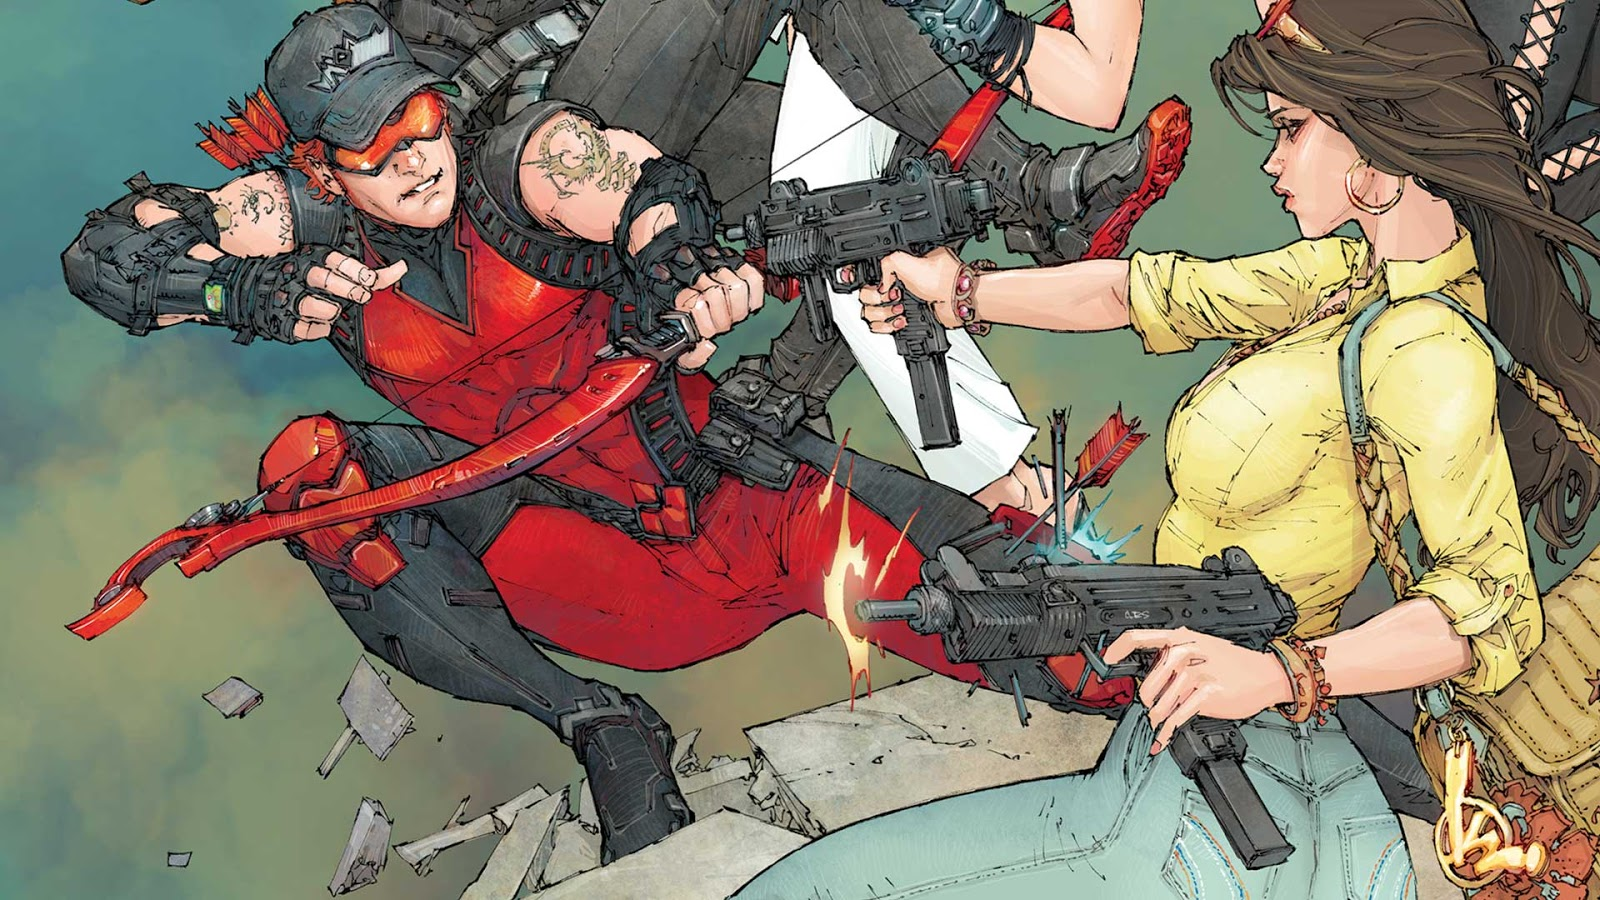 Weird Science Dc Comics Red Hood And The Outlaws Annual 2 Review